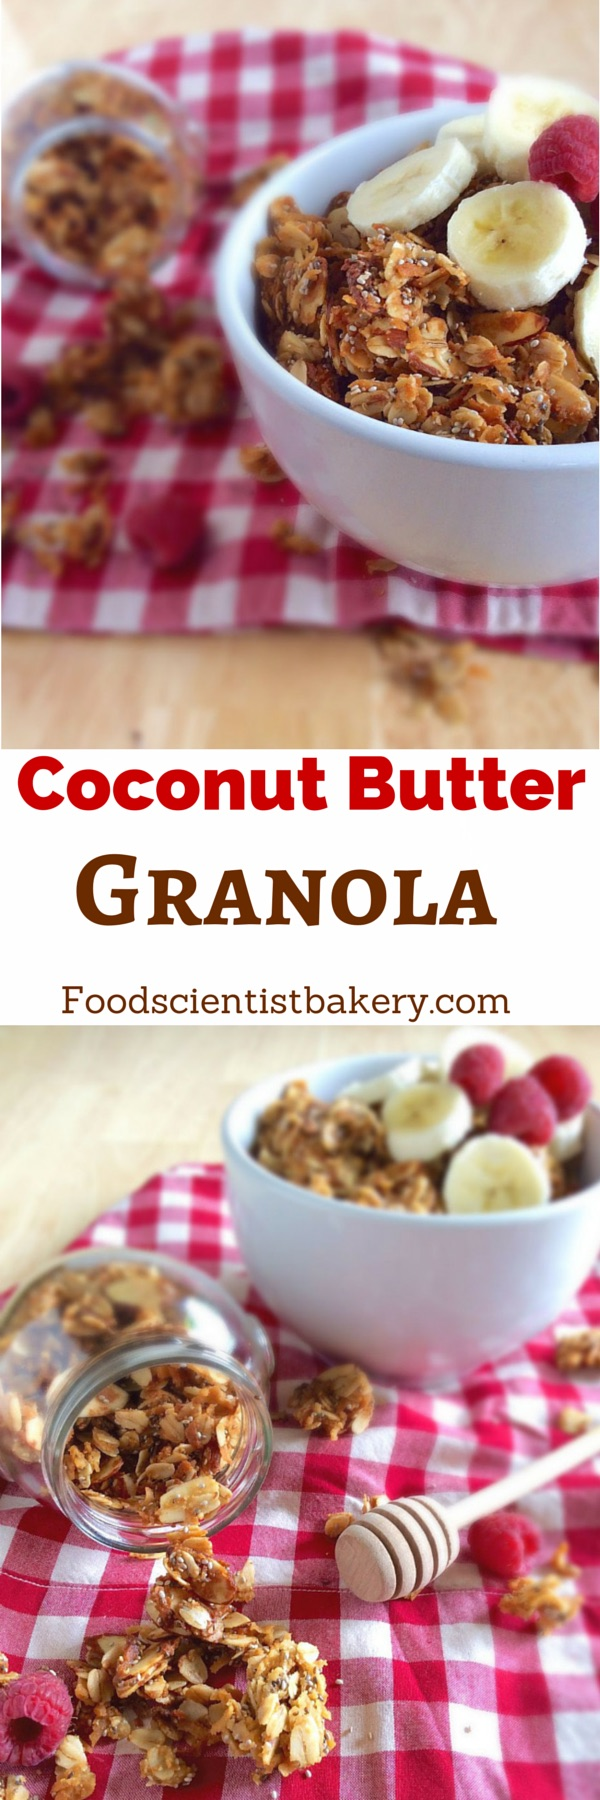 Coconut Butter Granola- the perfect snack, breakfast, or dessert! Healthy and very simple to make!